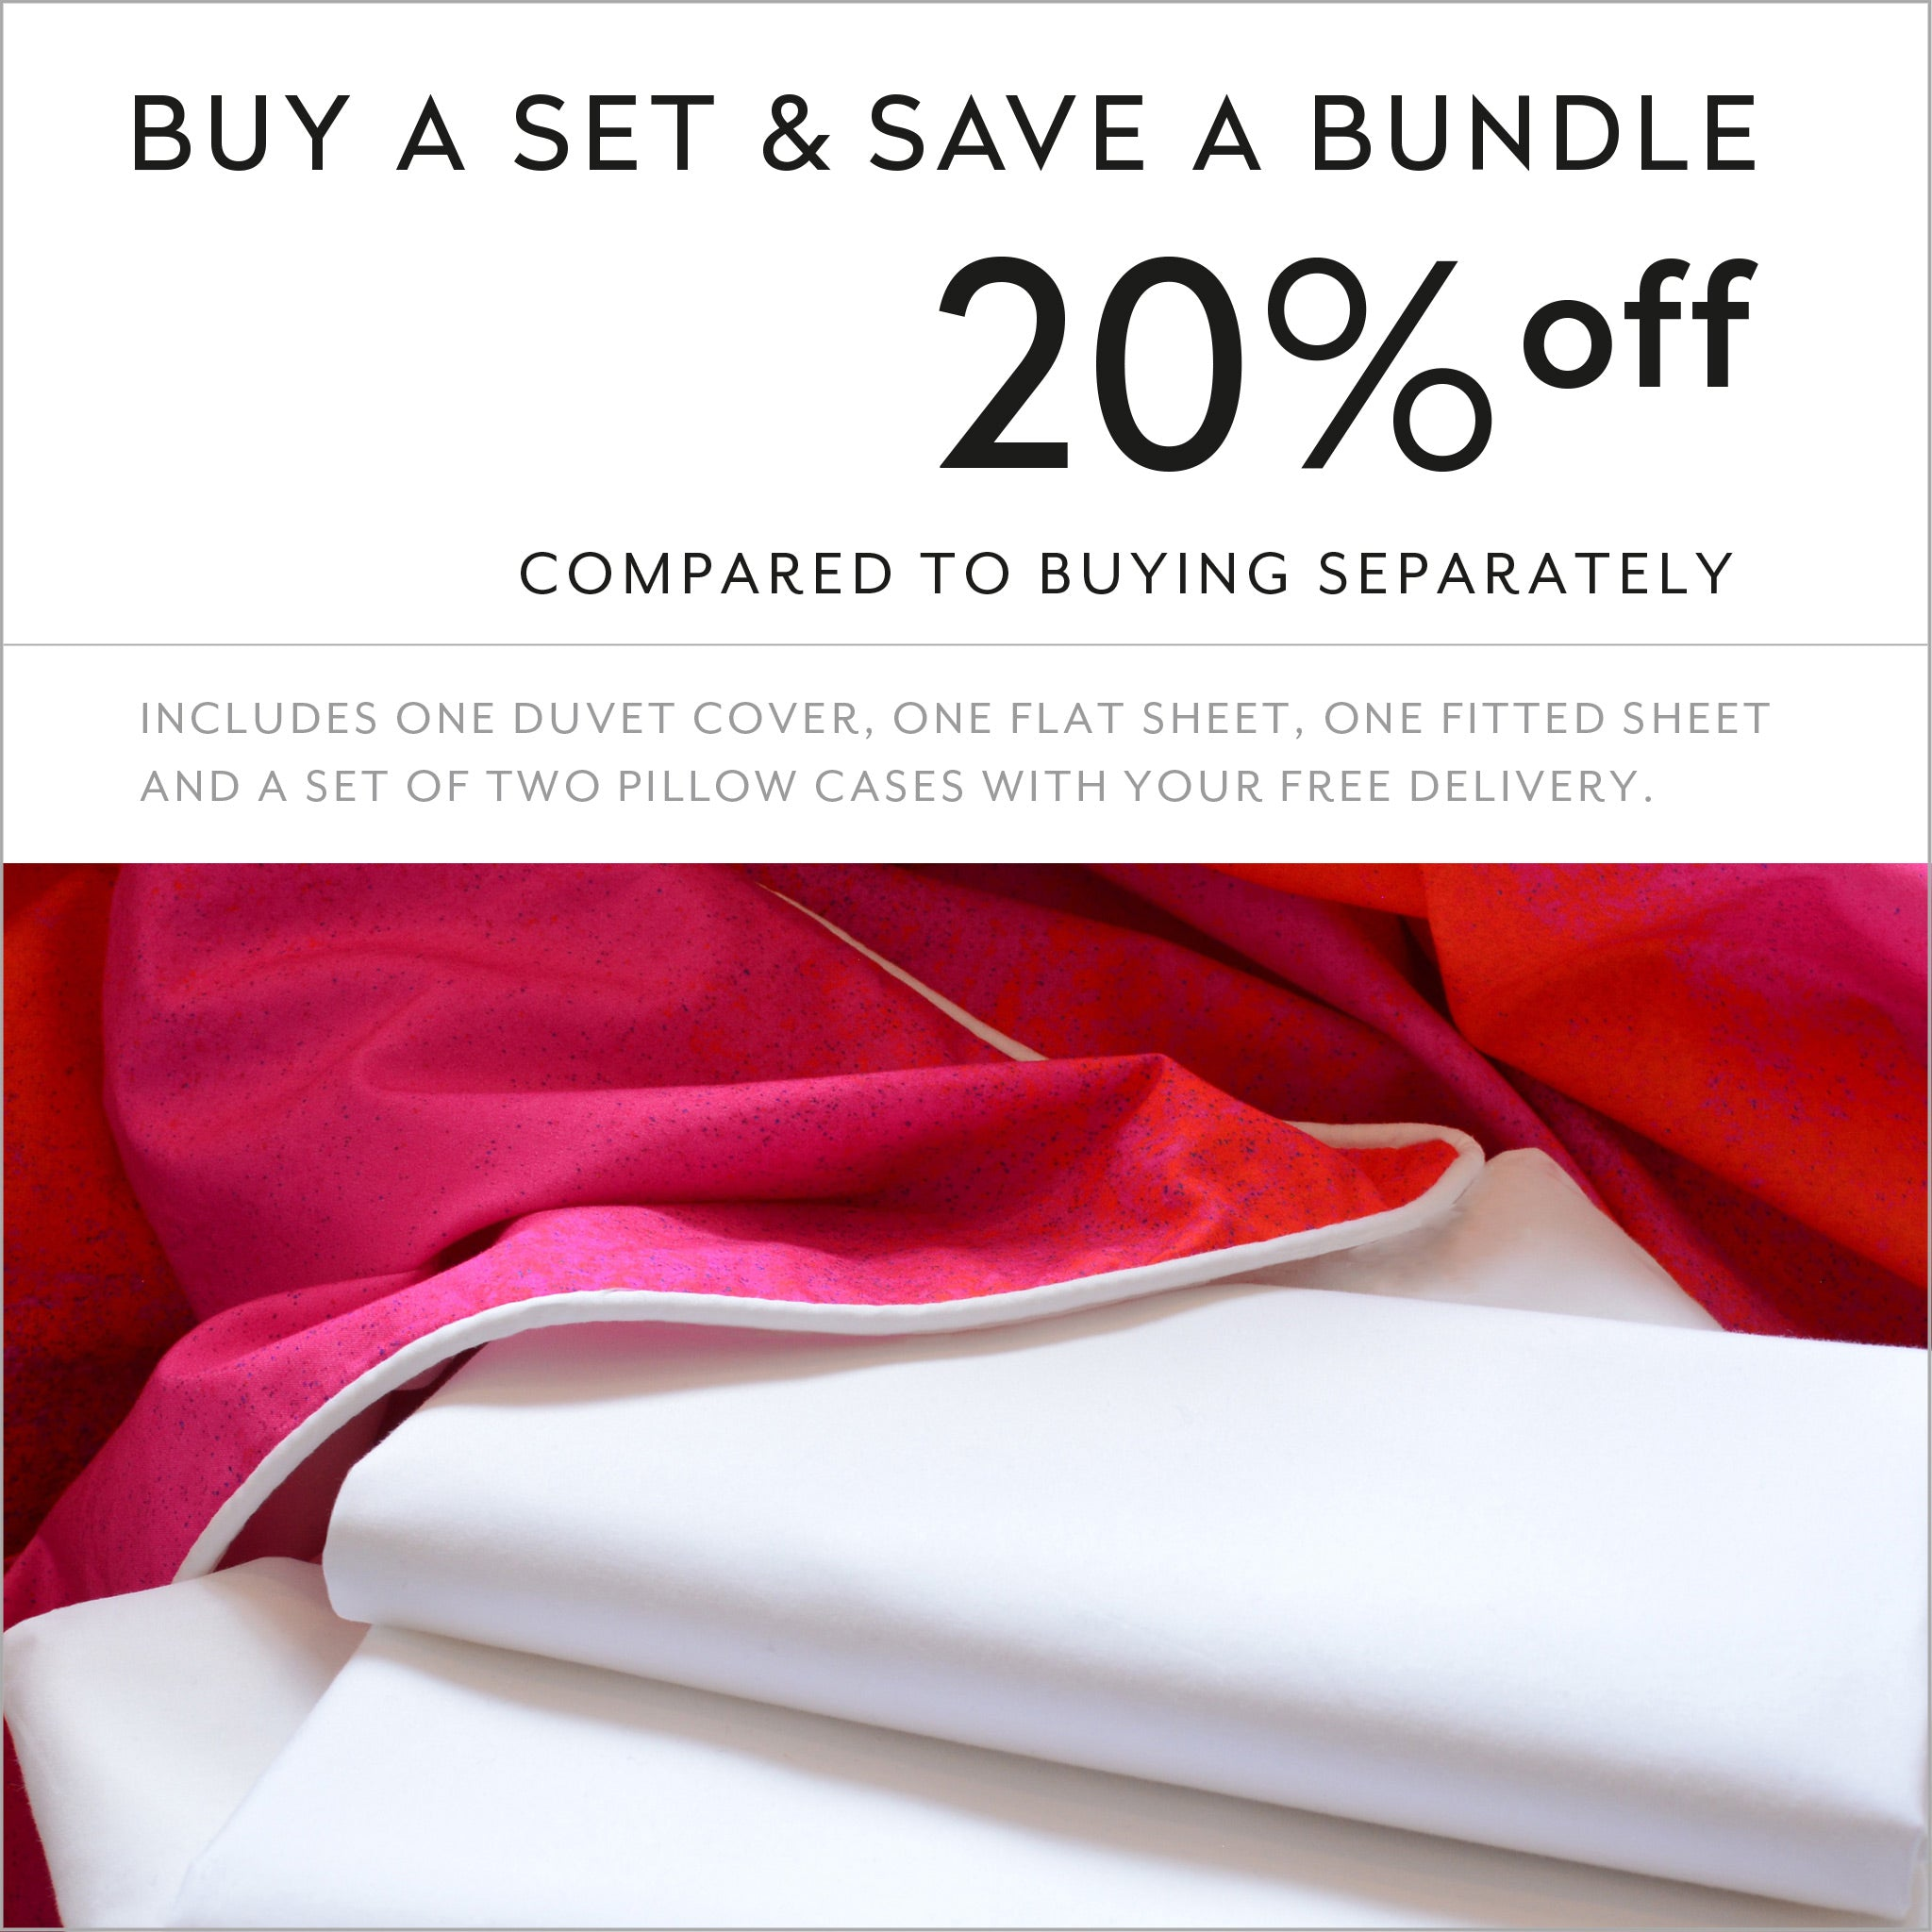 ZayZay-luxury-linen-sets-save-a-bundle-Apsara